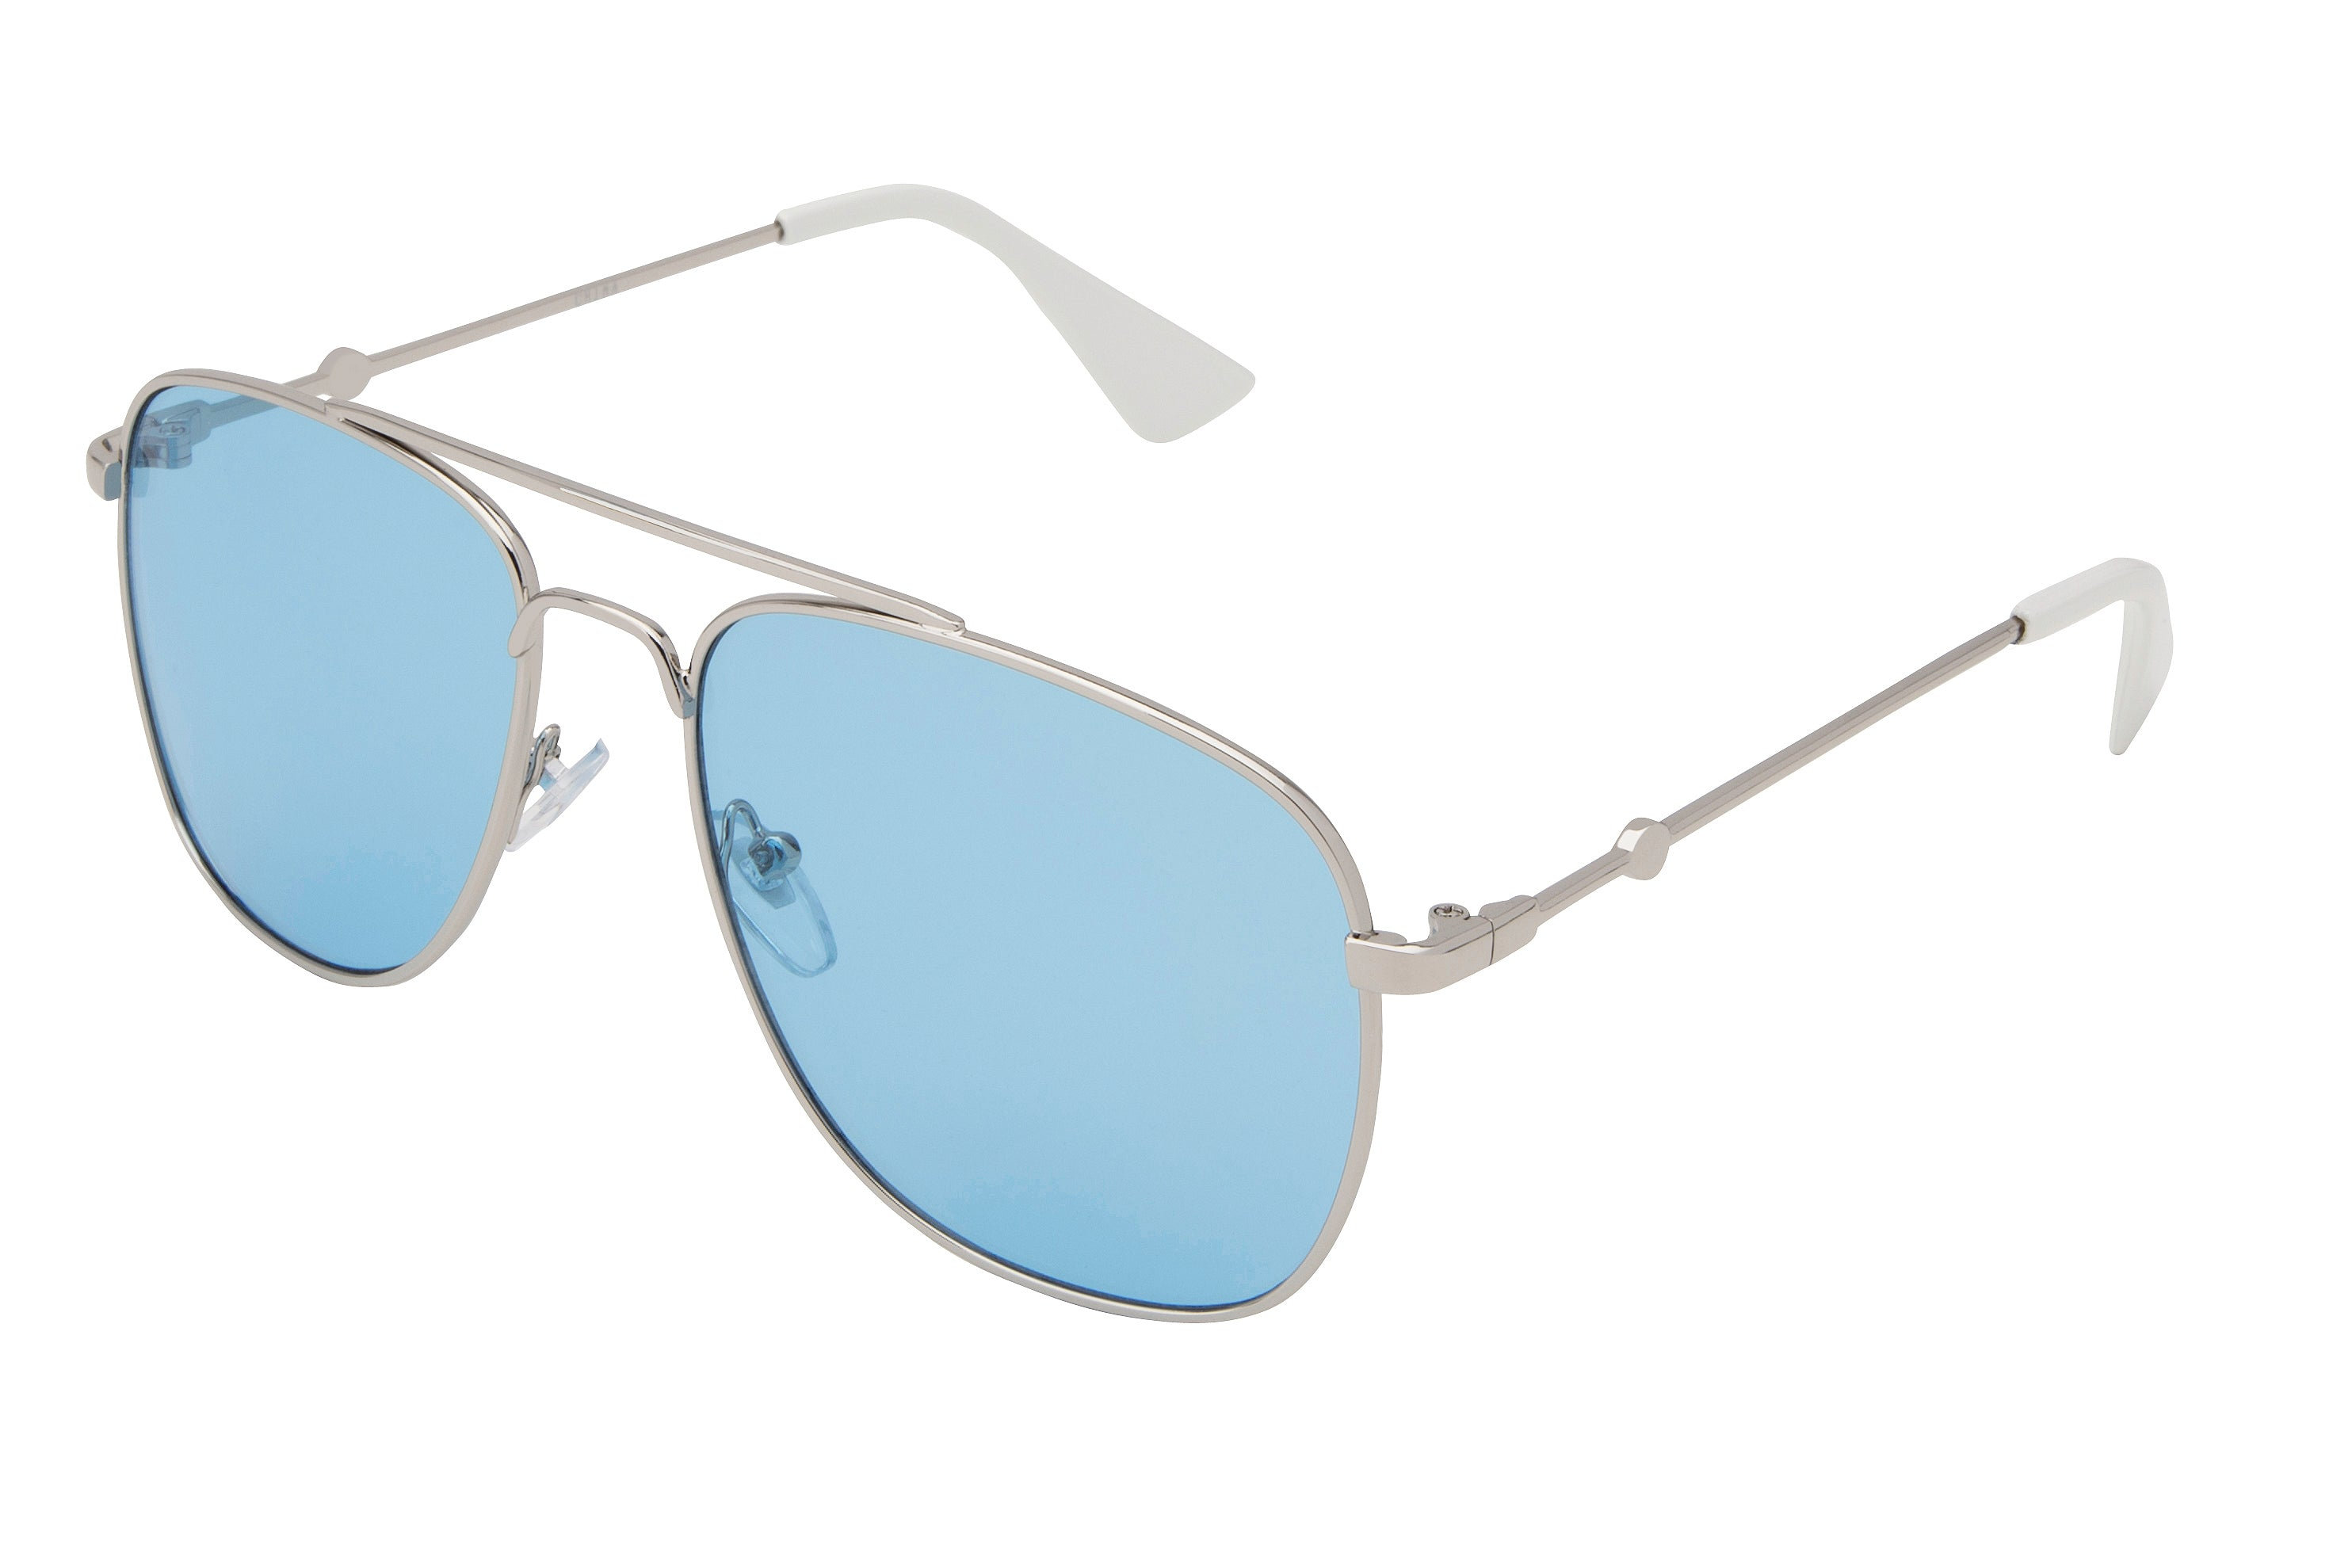 GU32 - Women's Pilot Fashion Sunglasses